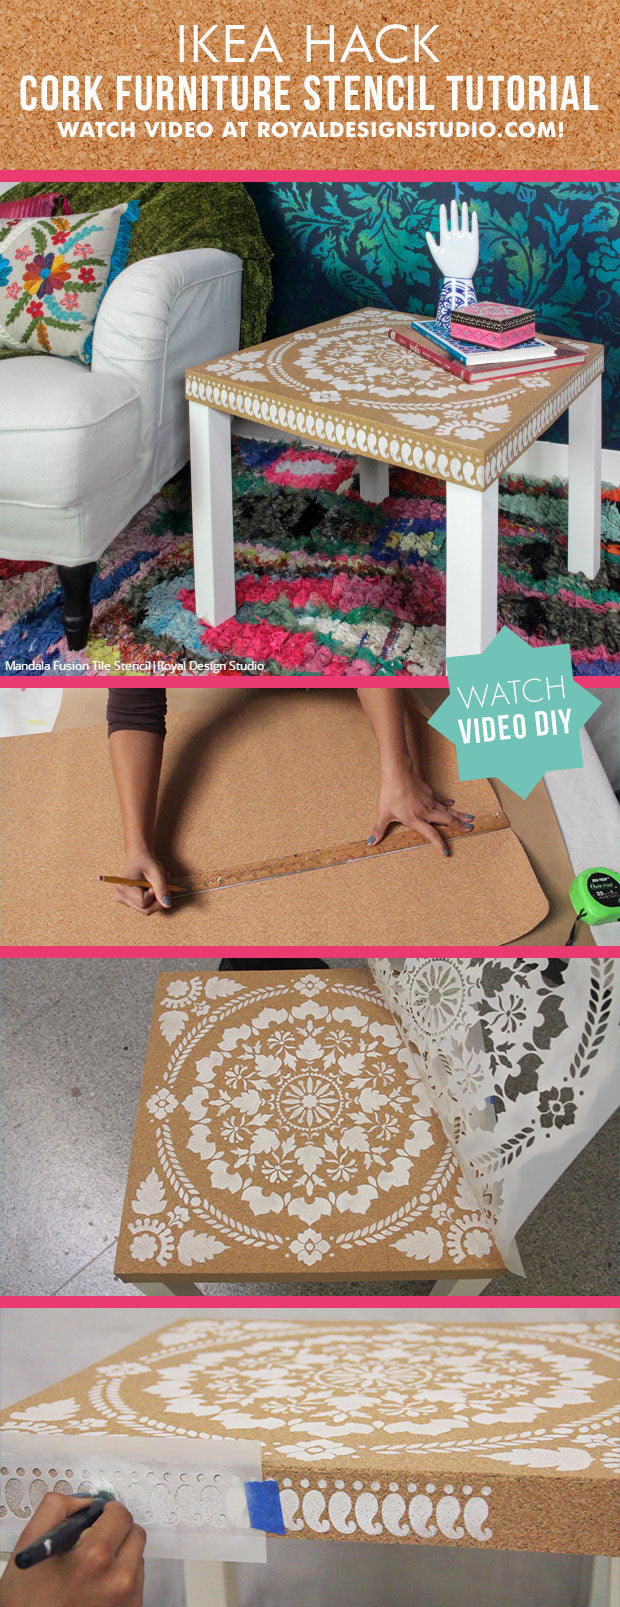 Easy diy ikea hack how to decorate cork furniture for Tutorial ikea home planner